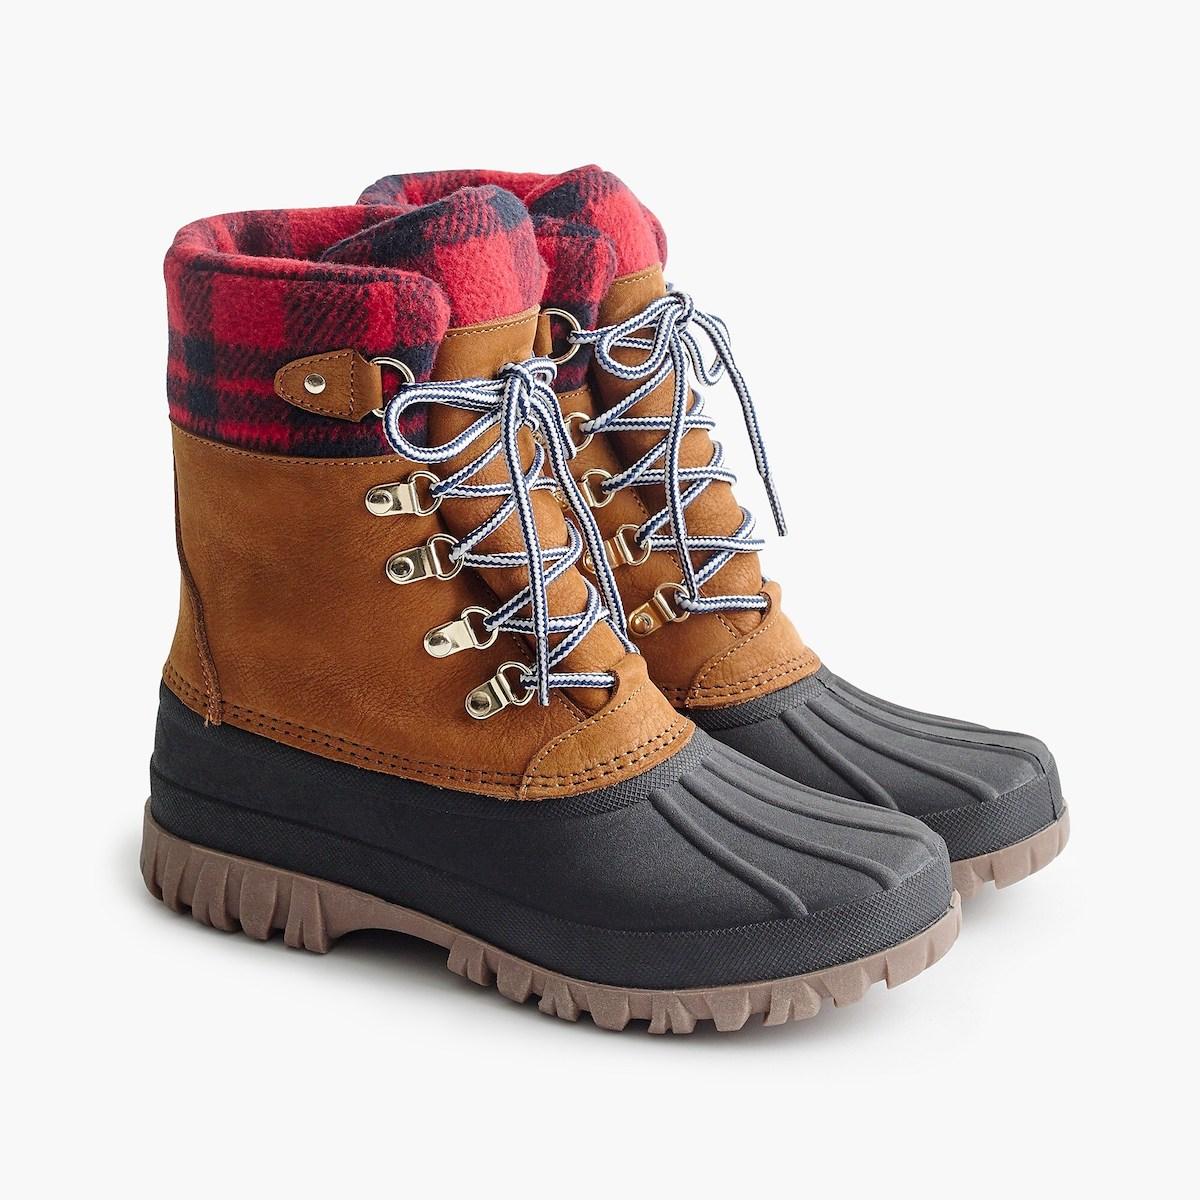 Black Friday shoe sale, winter boots in red plaid from J.Crew